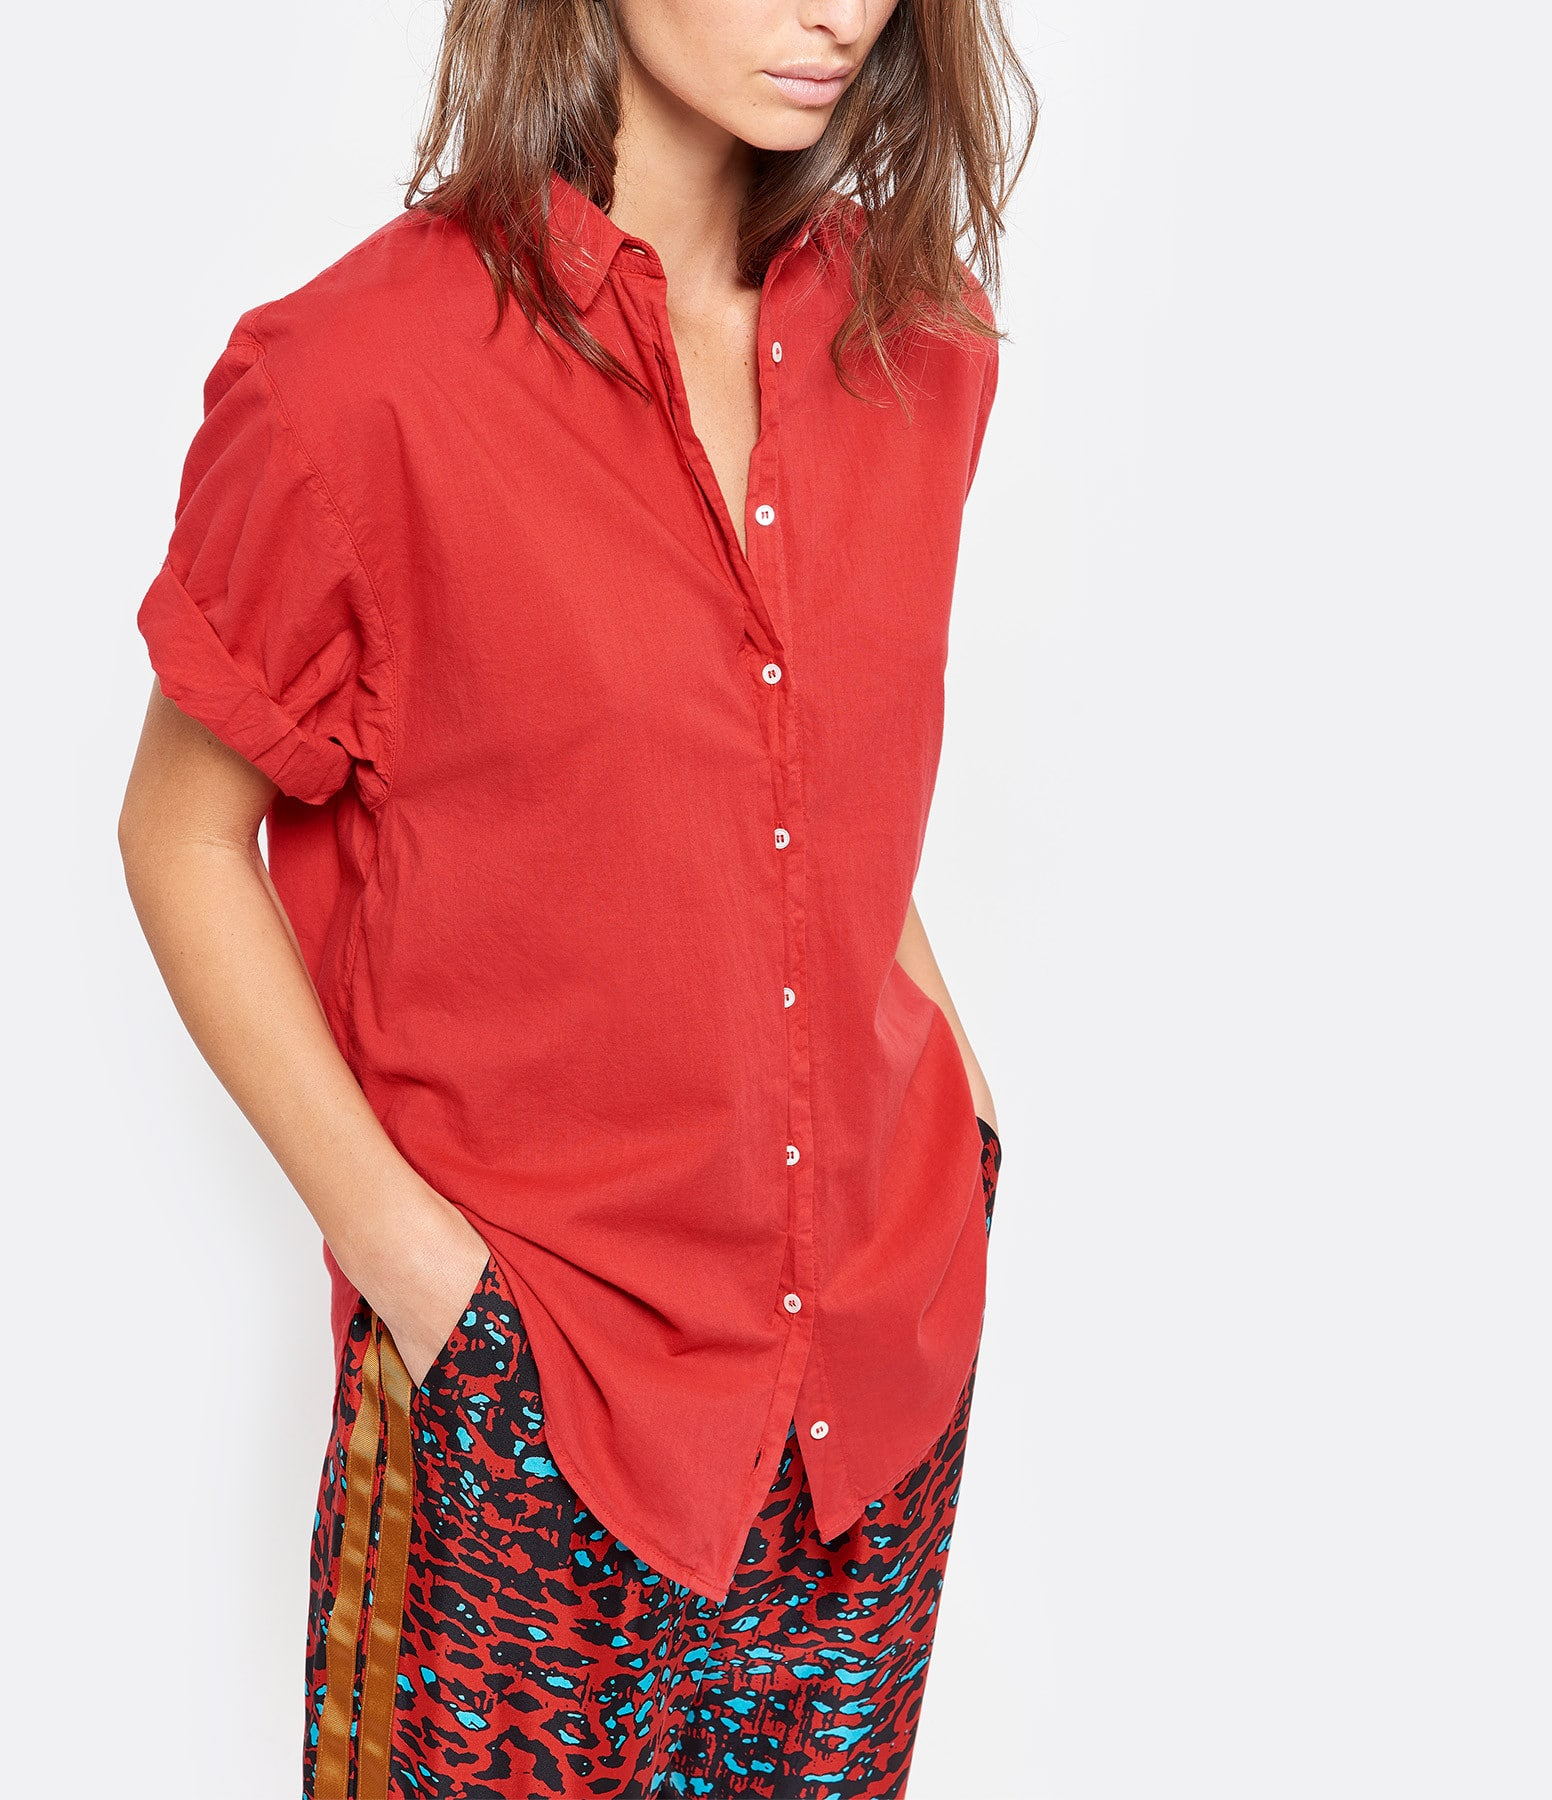 XIRENA - Chemise Channing Coton Rouge